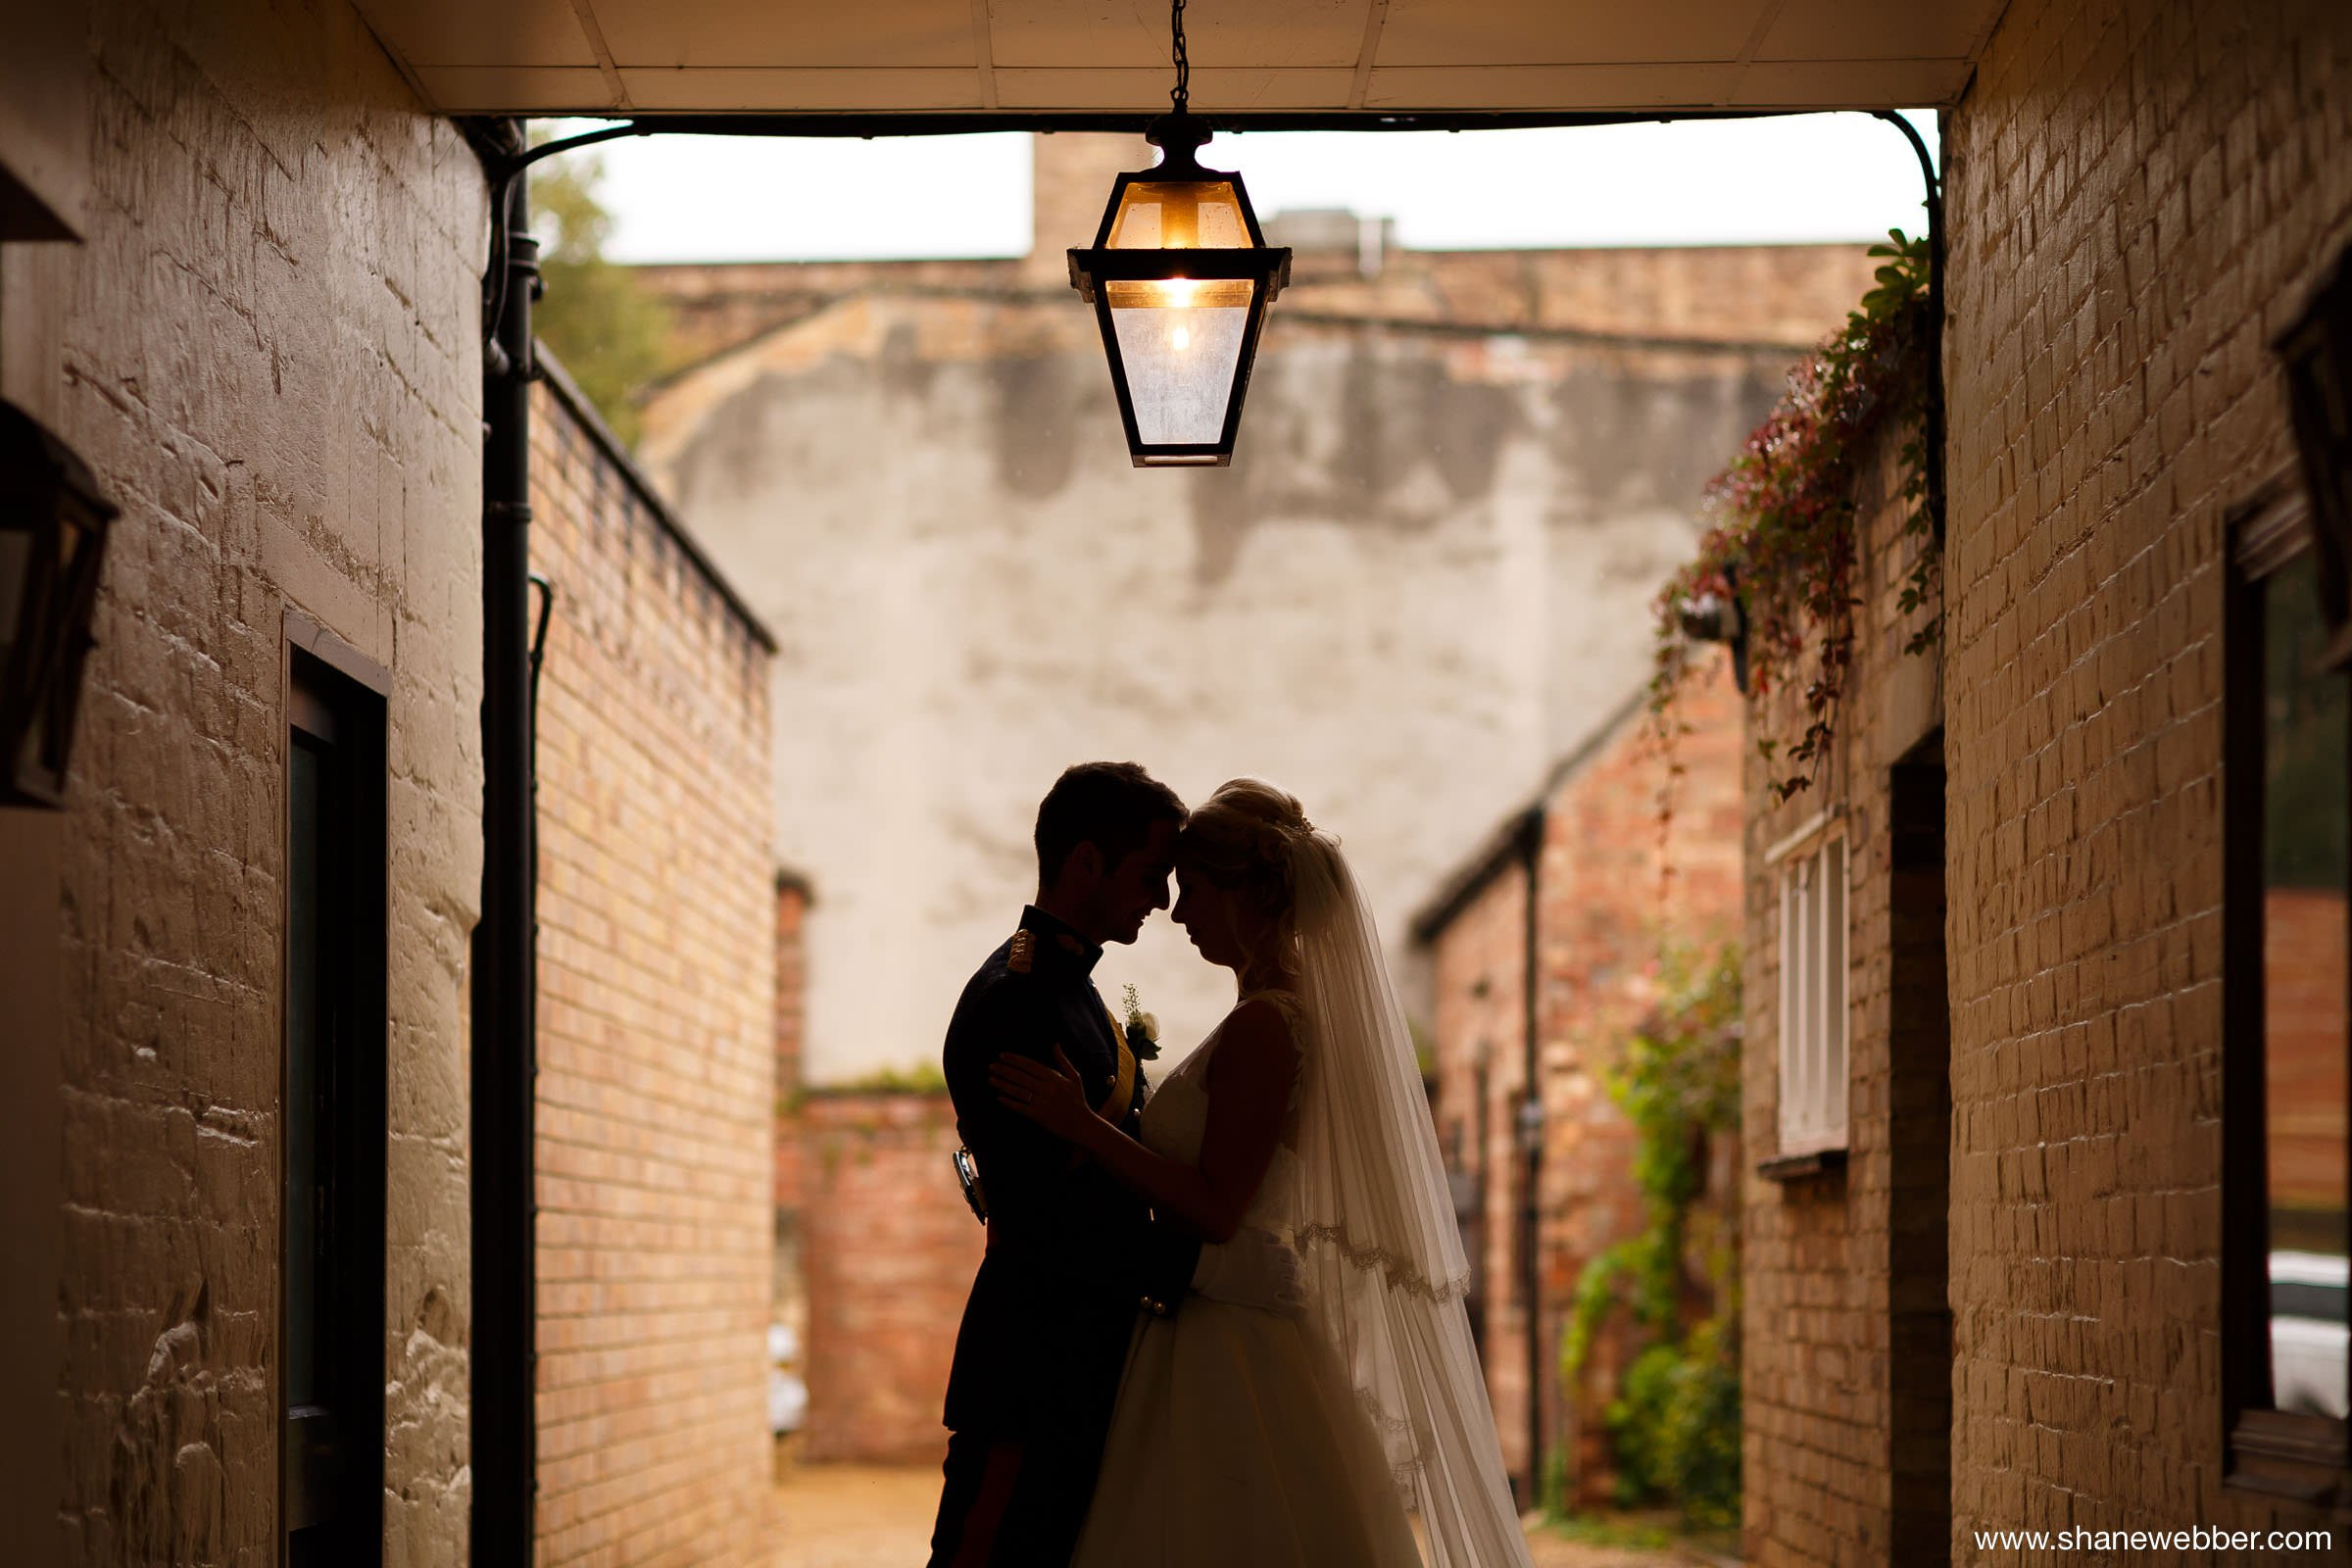 Best silhouette wedding pictures